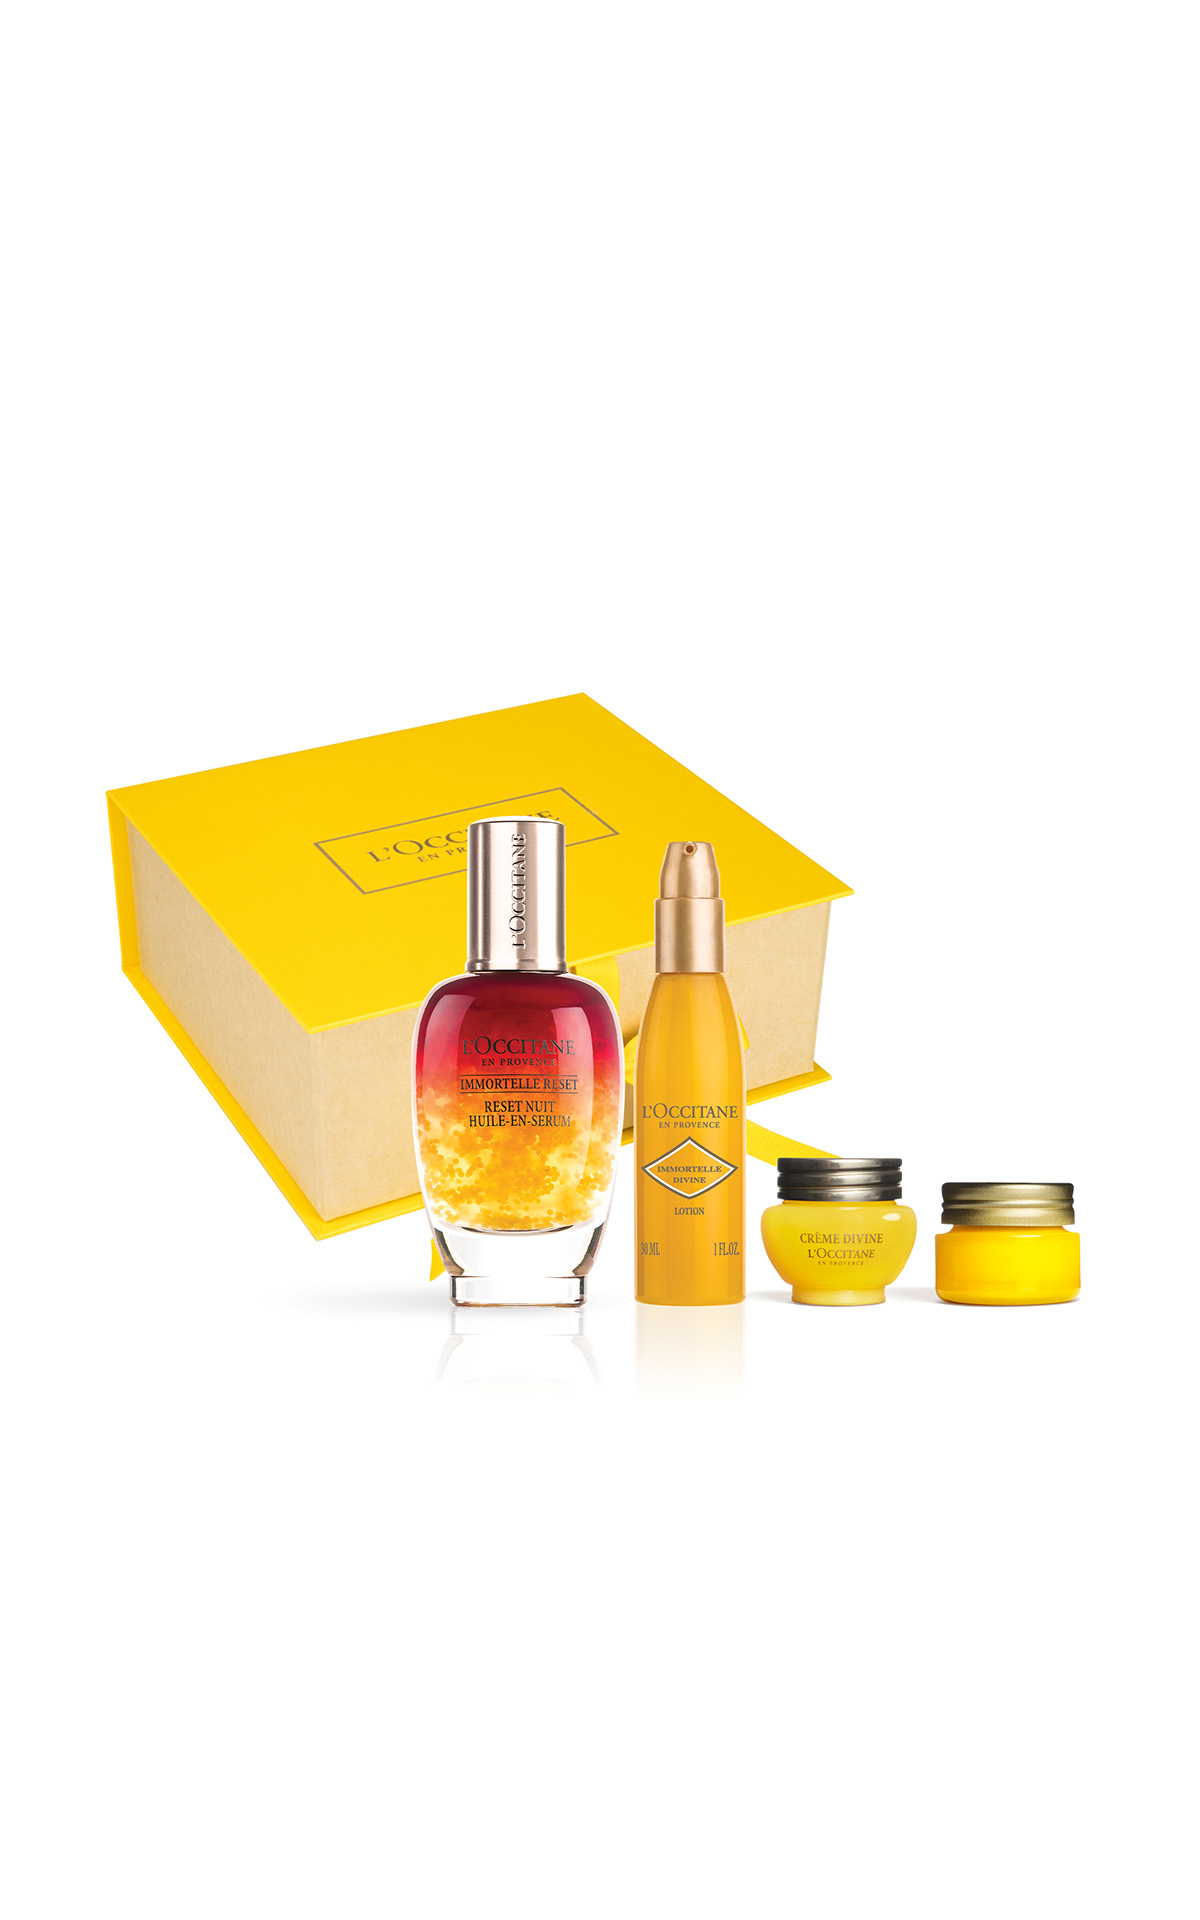 L'Occitane Supersize overnight reset serum limited edition gift set from Bicester Village